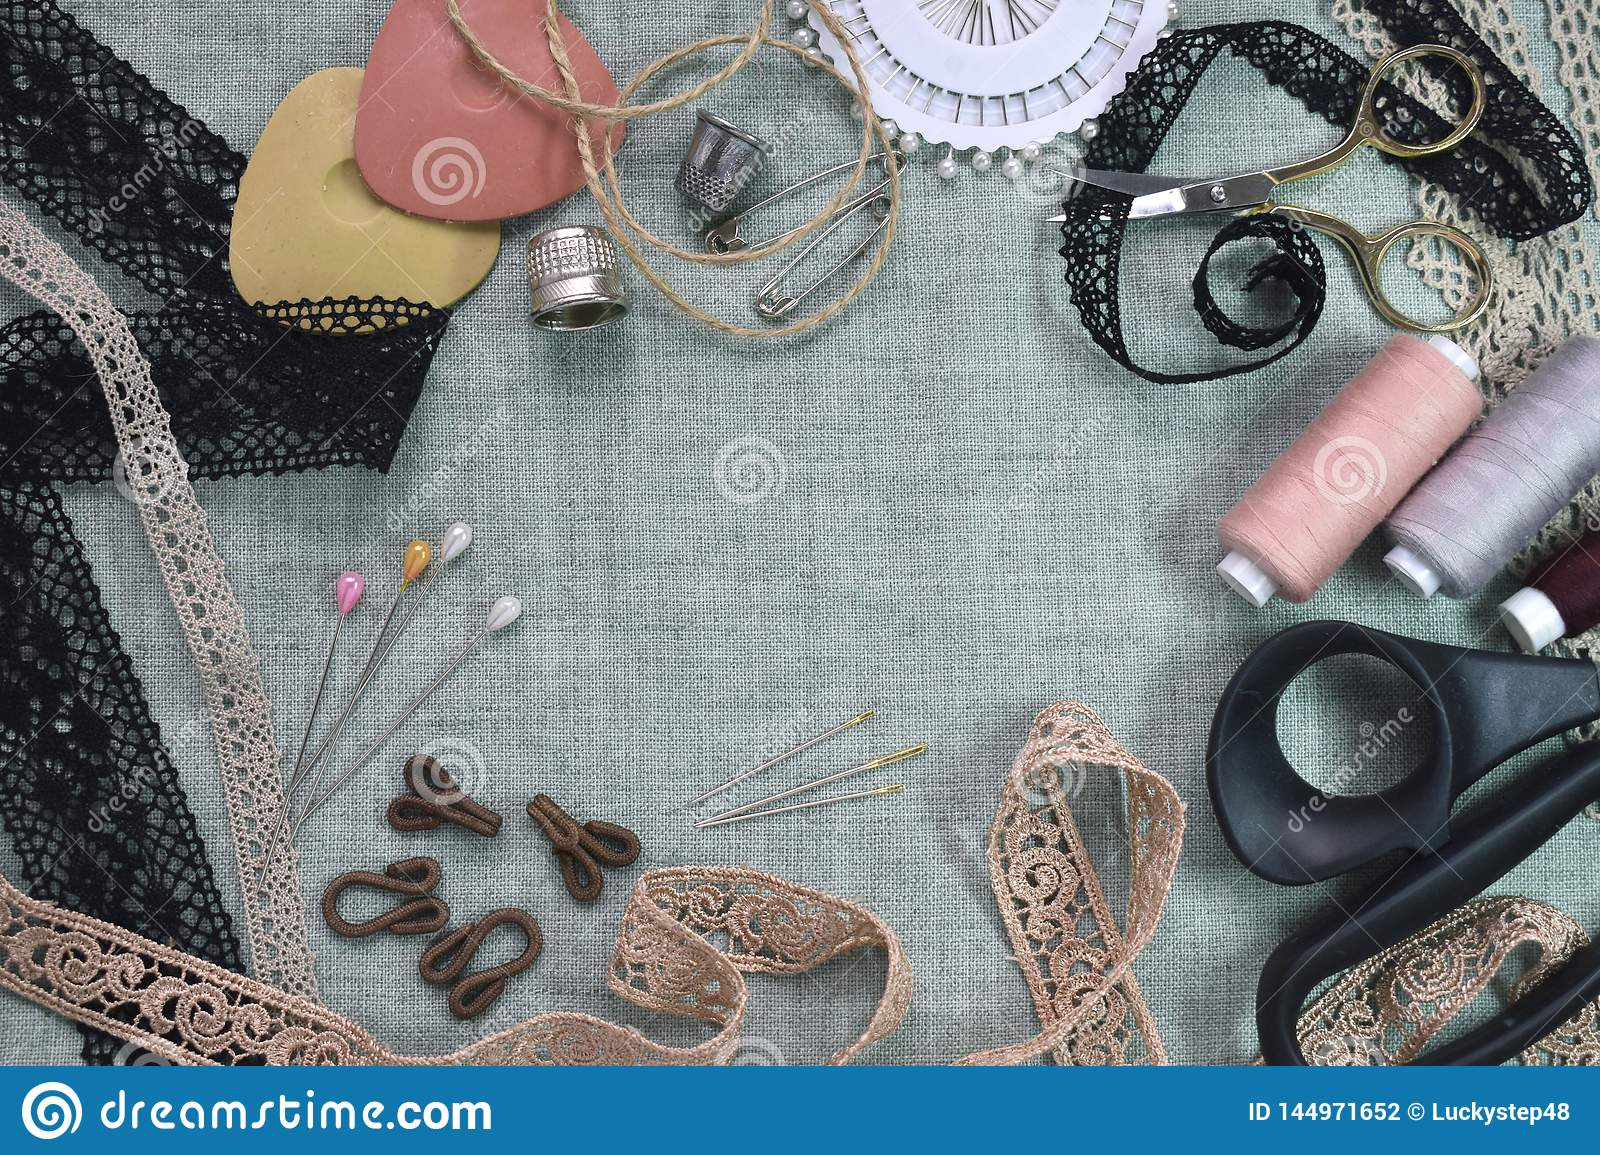 Sewing scene table flat lay composition. Threads, lace, pins, scissors, tape, reel, cloth. Pastel colors linen fabric